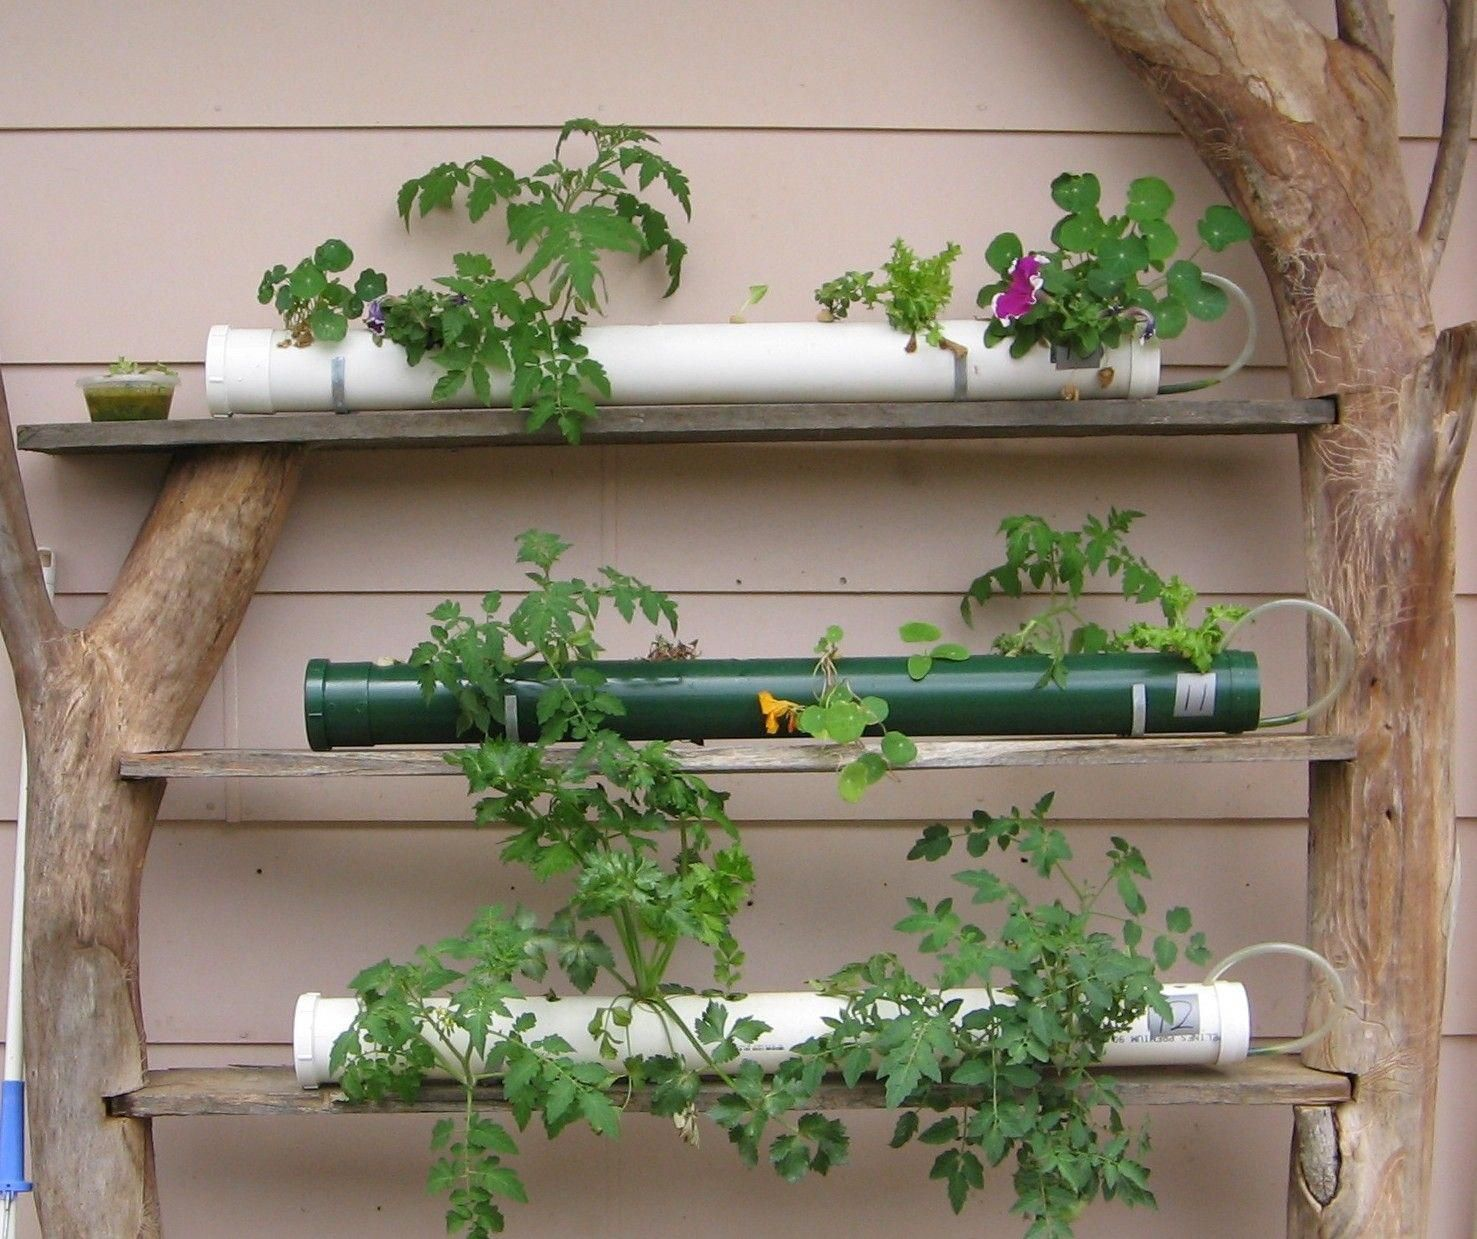 Pin On Aquaponics Systems For Sale